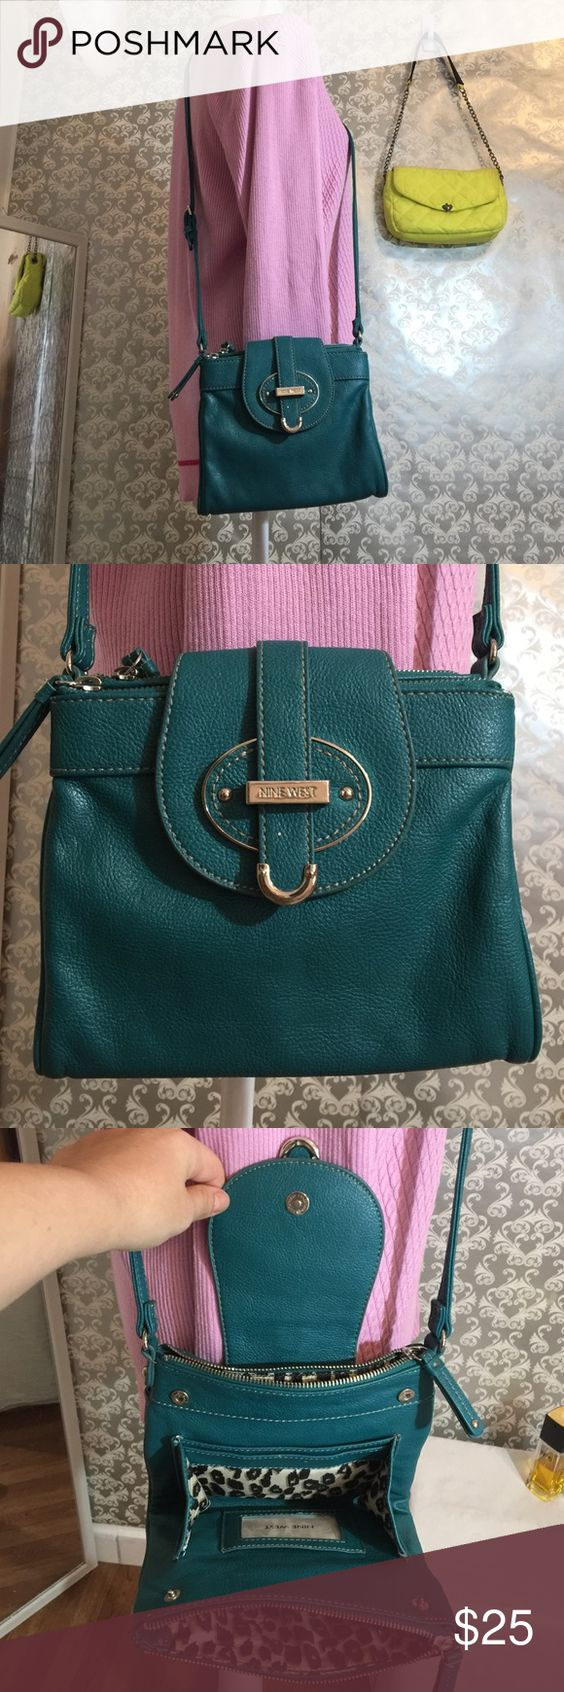 Nine West aqua messenger bag 7 inches in length 8 inches in width has six compartments adjustable straps leopard lining Nine West Bags